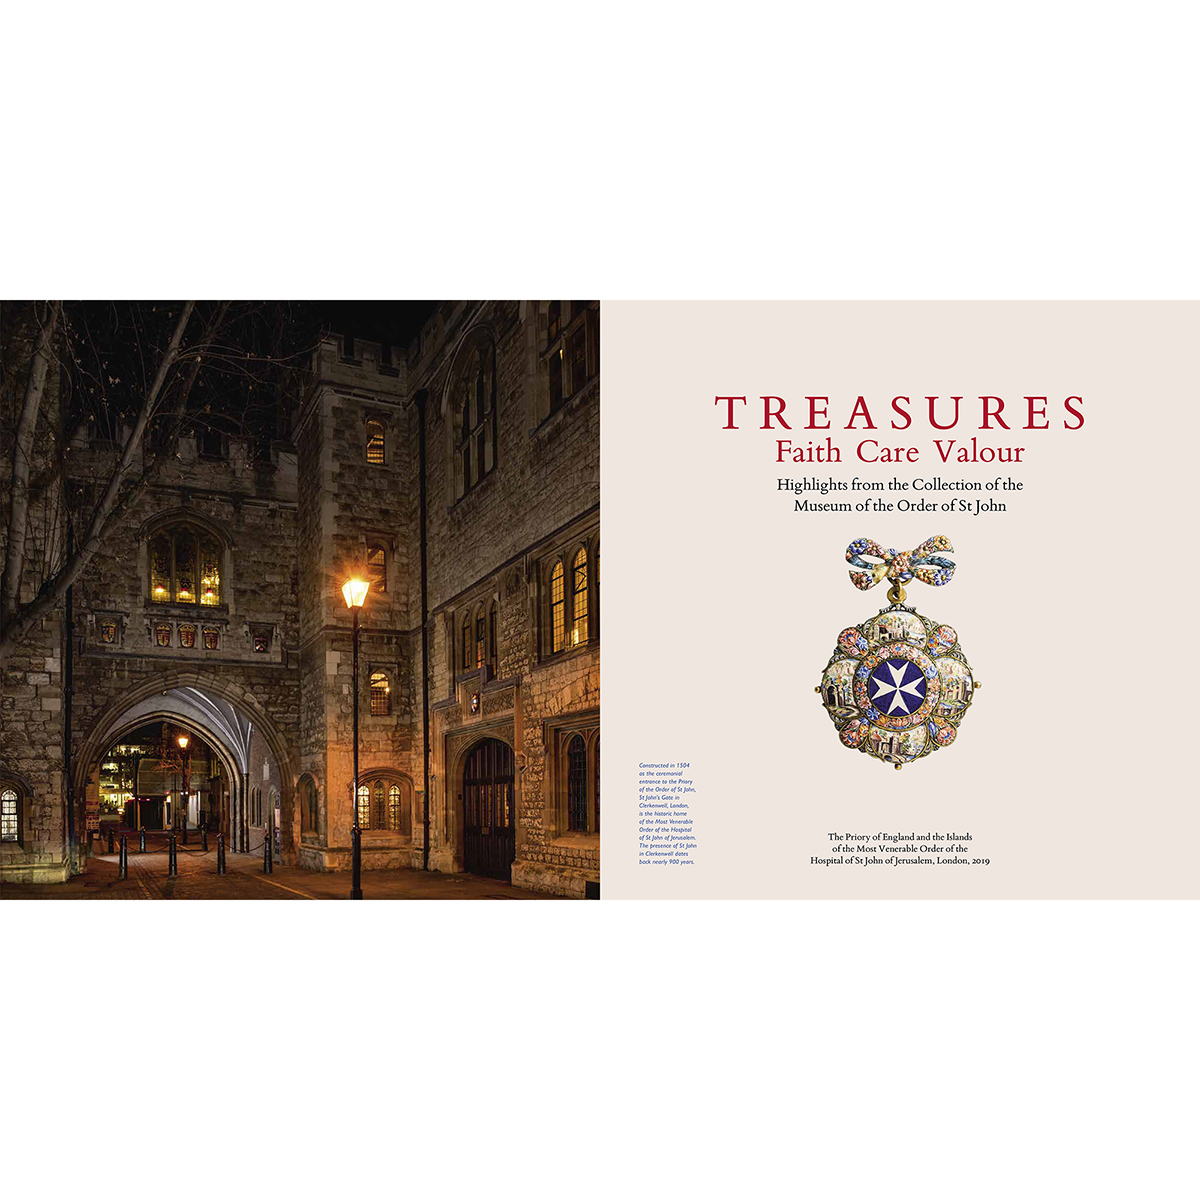 TREASURES - Highlights from the Collection of the Museum of the Order of St John